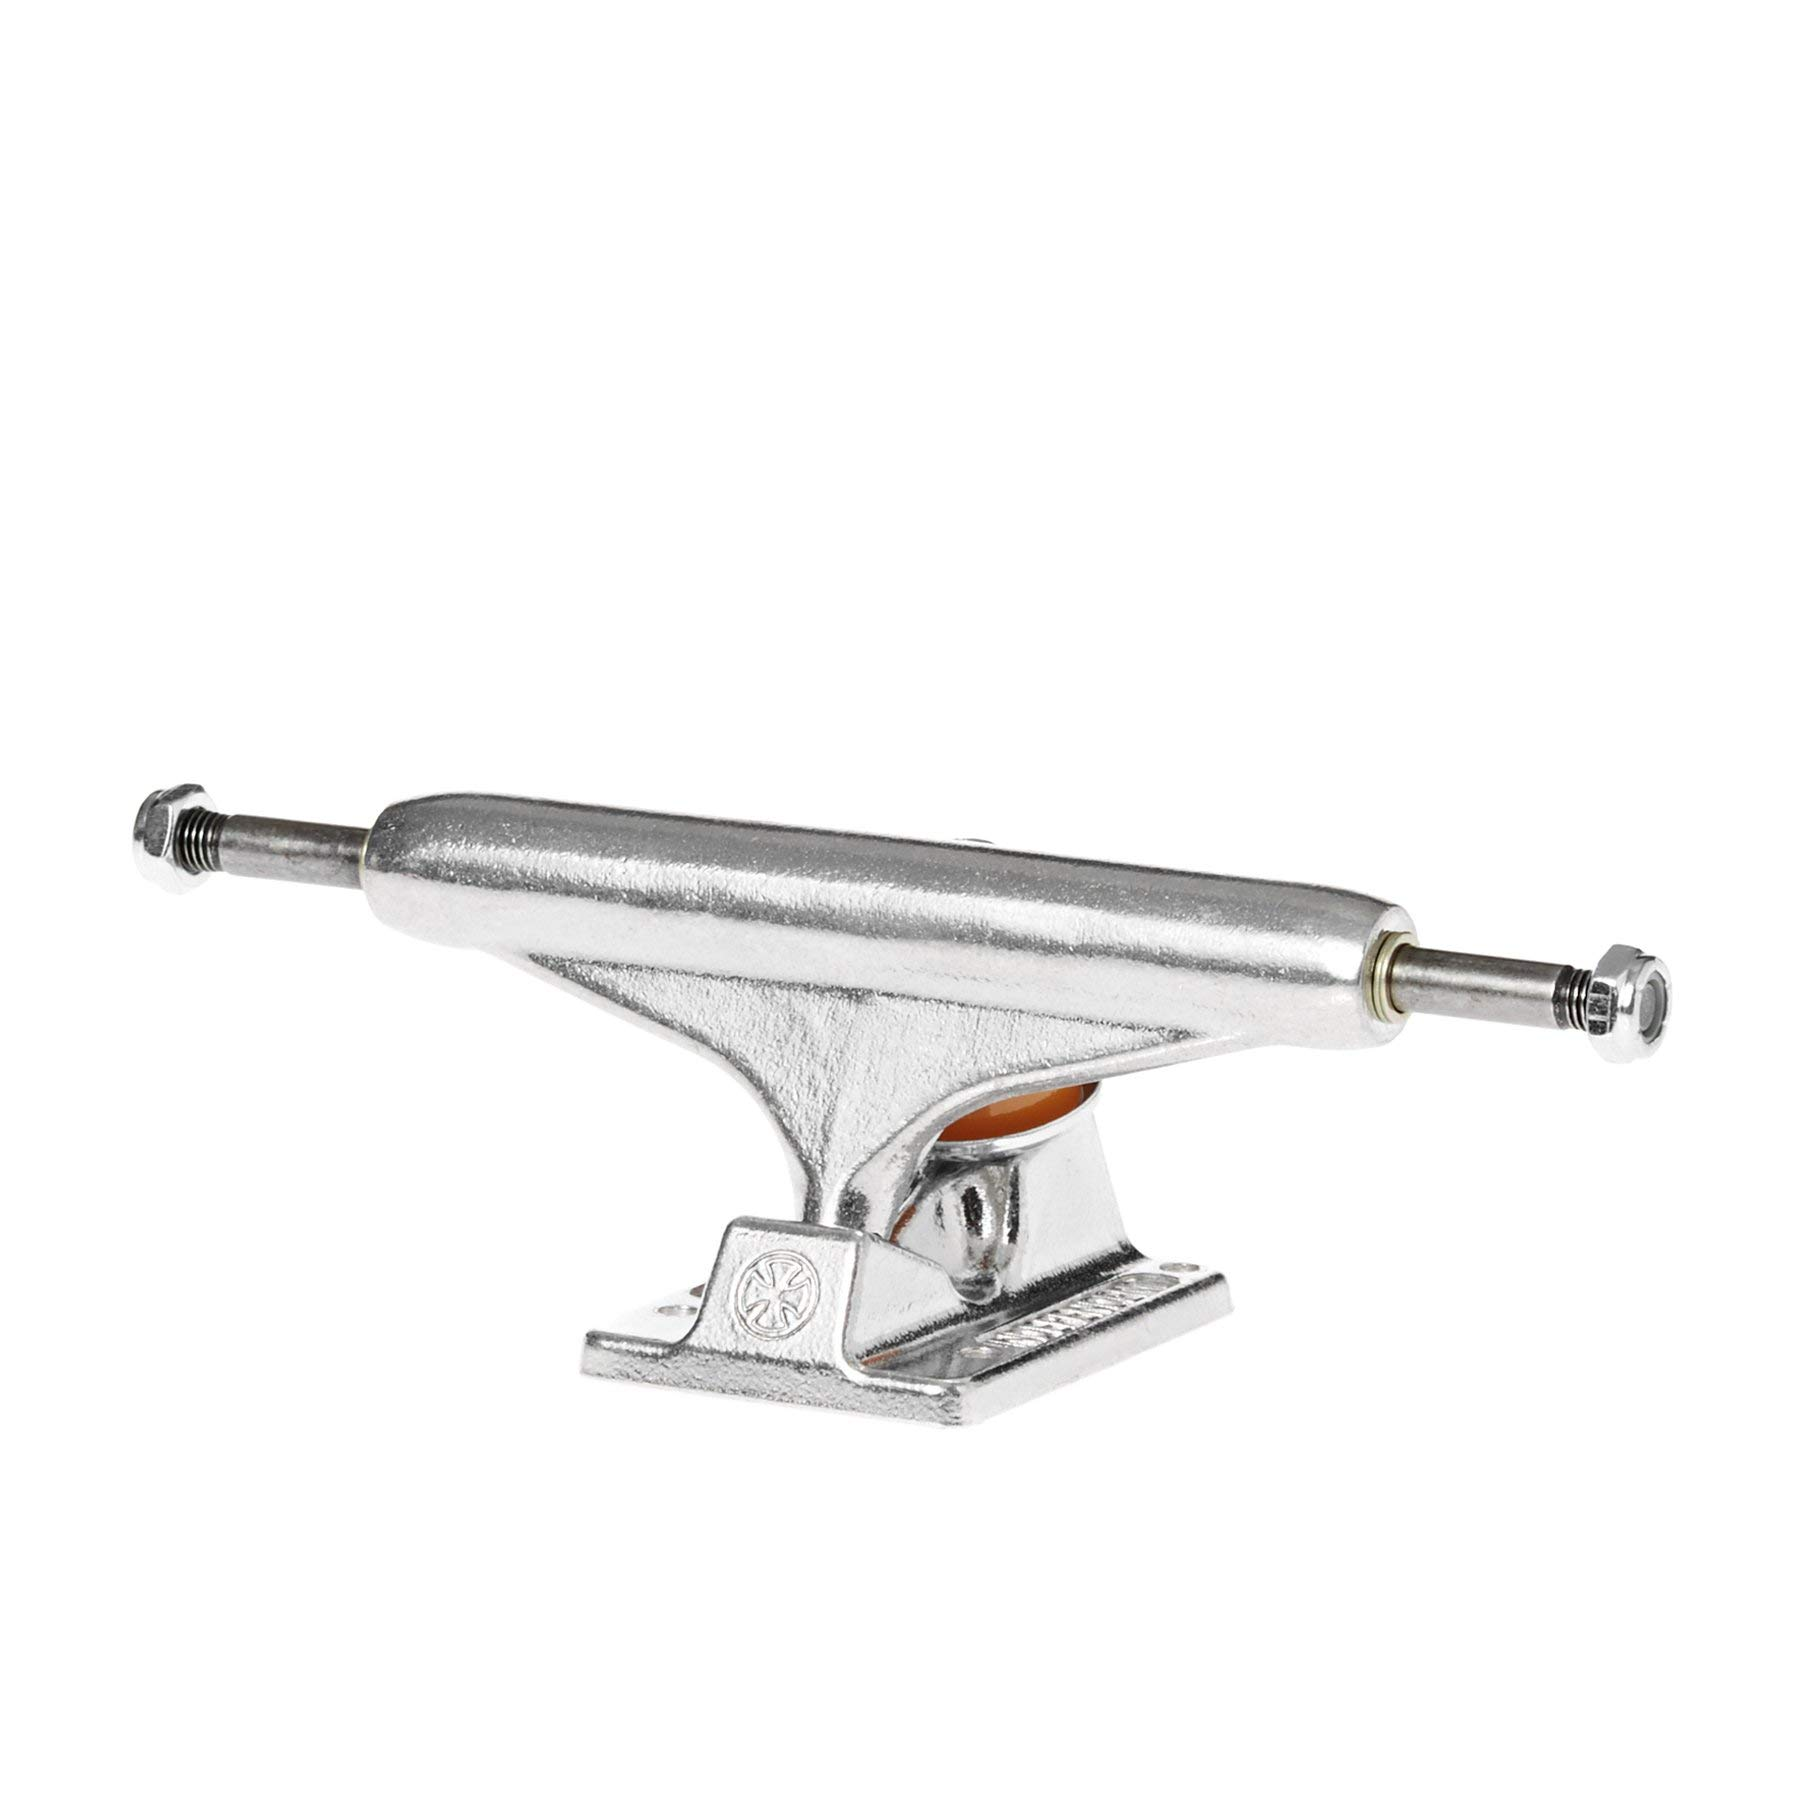 Independent Stage 11 Standard 139mm Skateboard Truck 139mm Polished by Independent